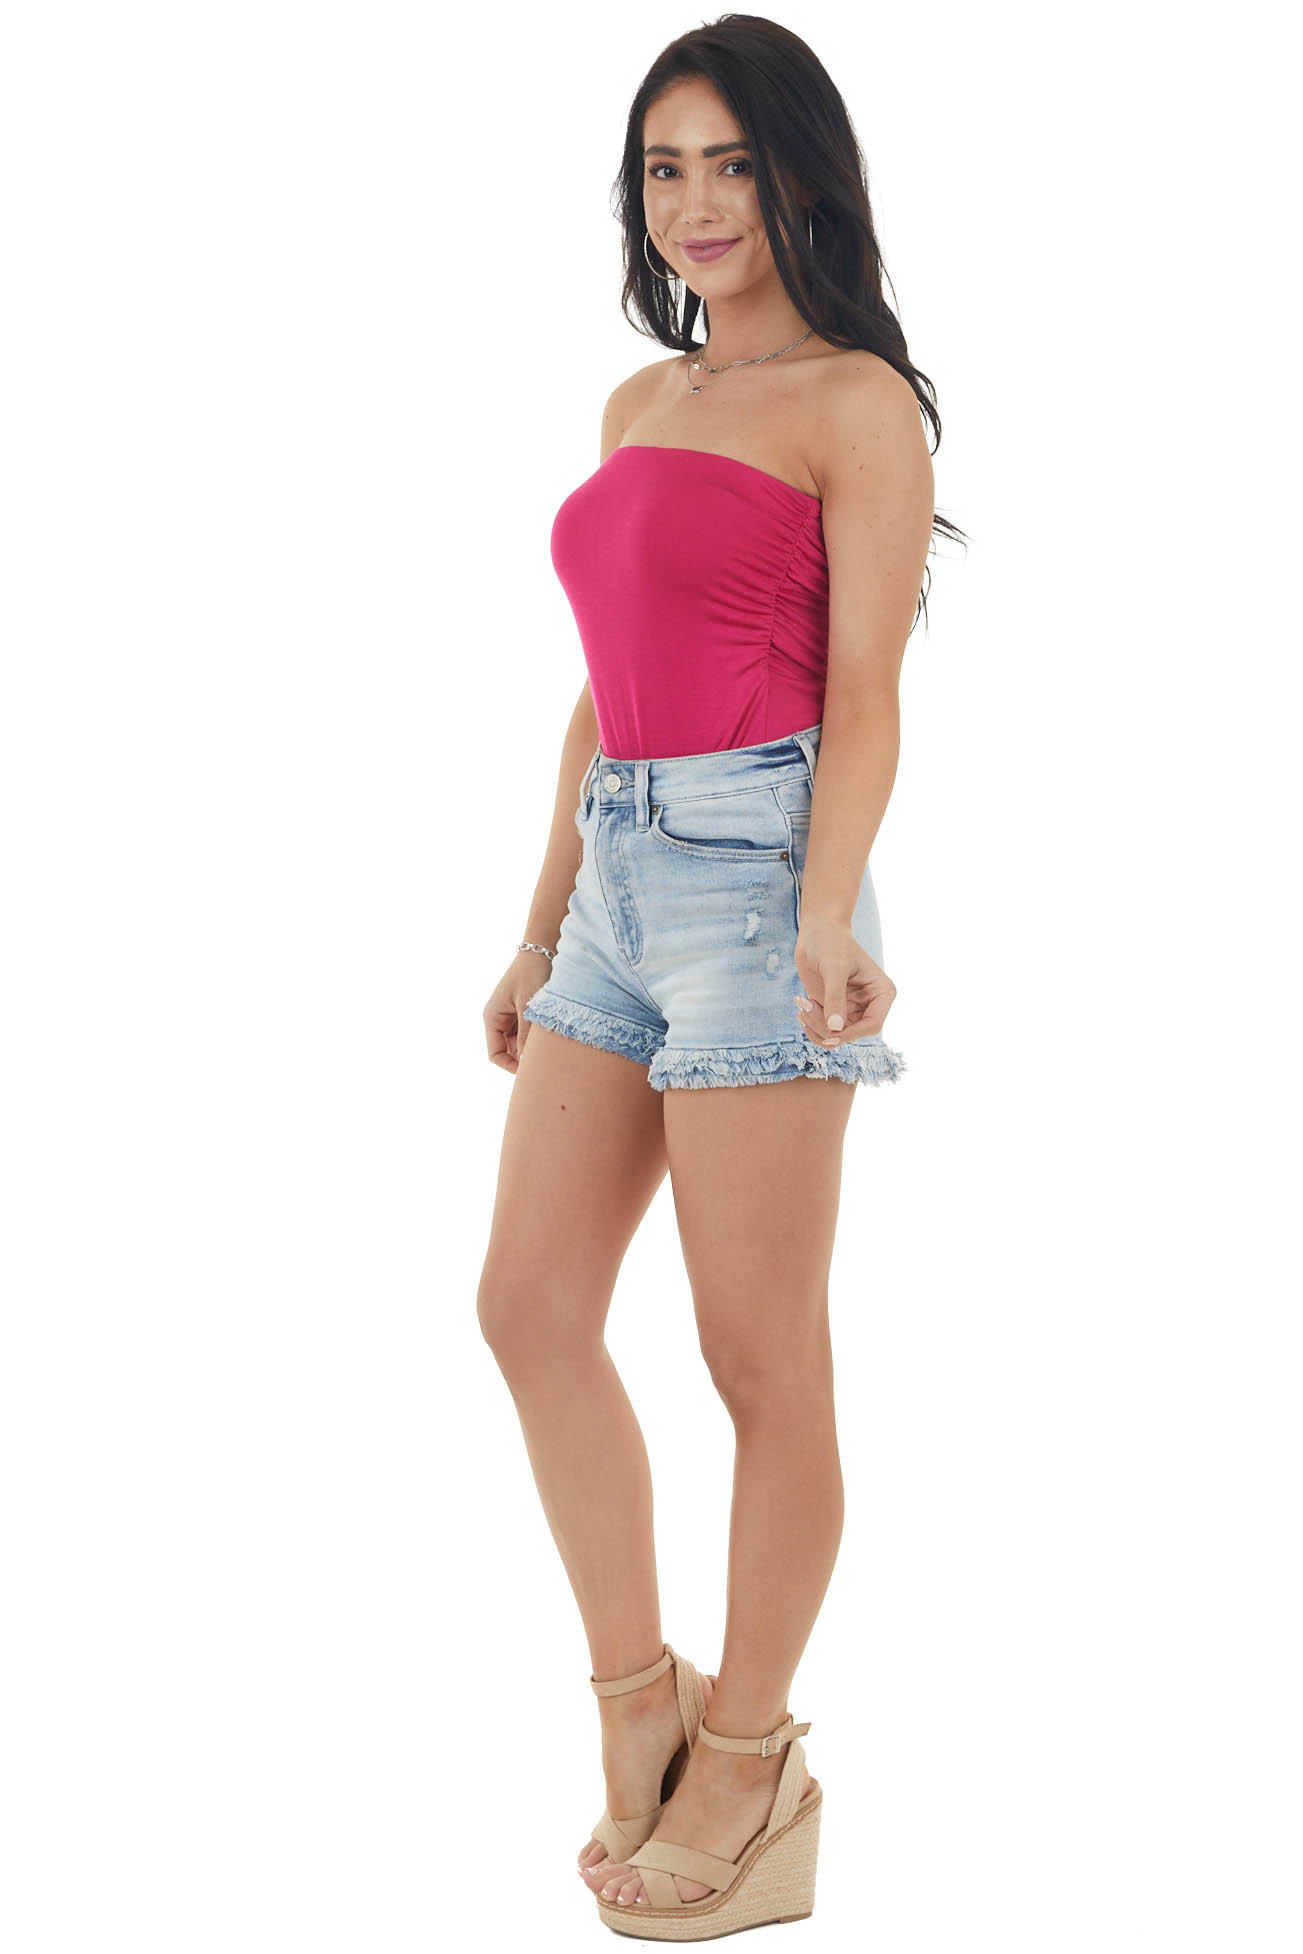 Magenta Strapless Stretchy Knit Bodysuit with Ruched Sides